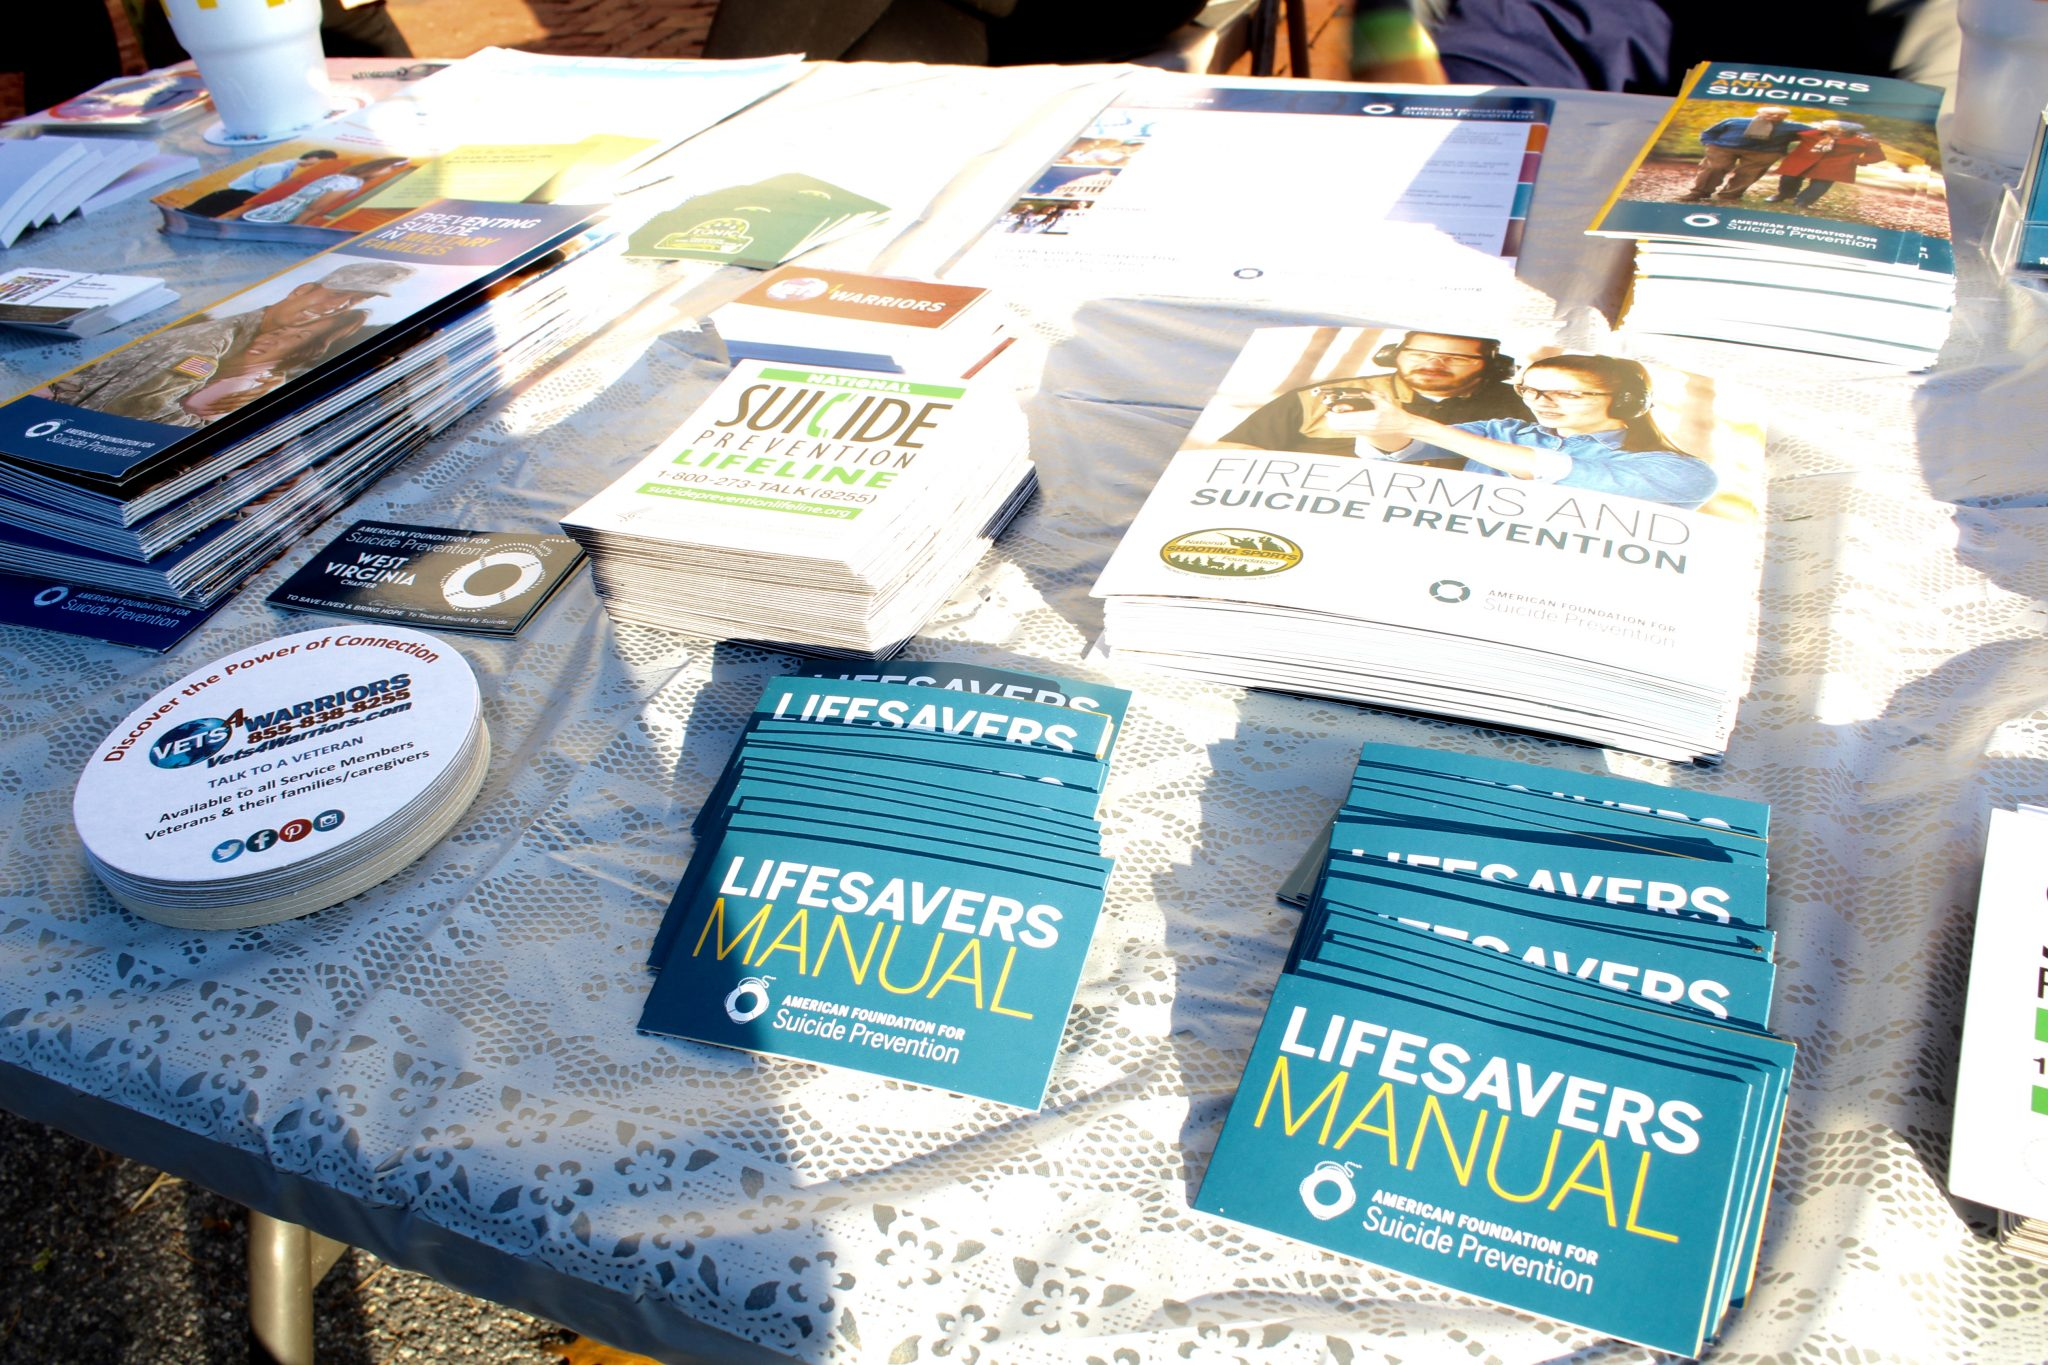 A closer look at some of the literature and the message of suicide prevention.